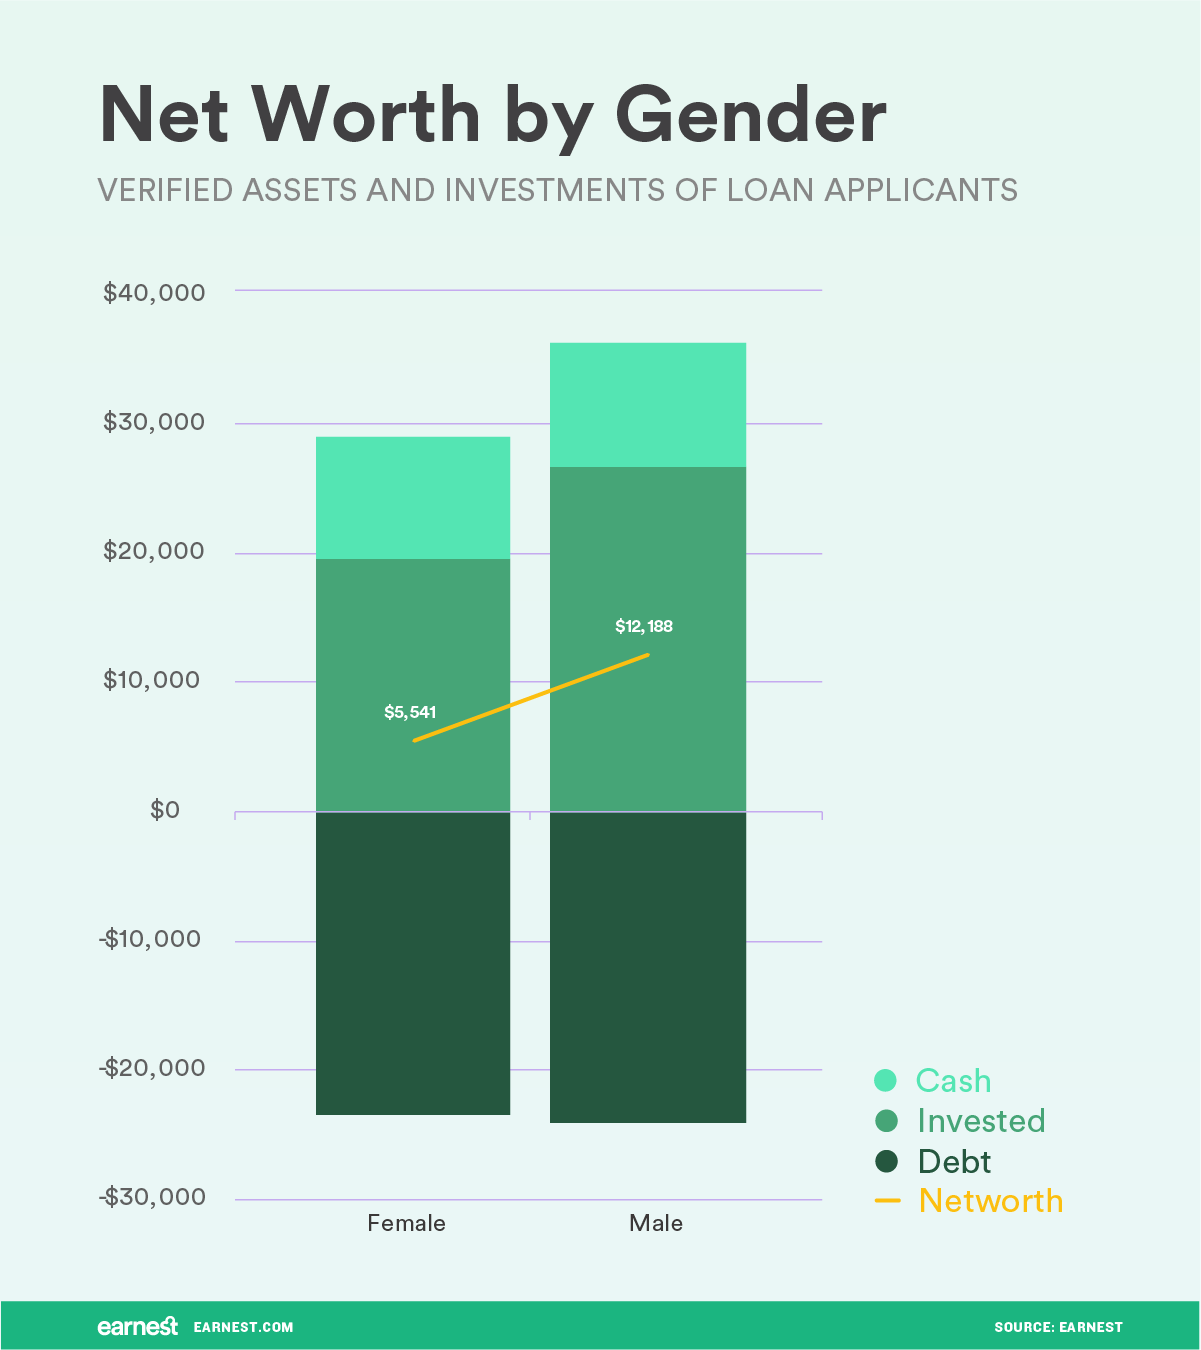 on average young professional men and women both have positive net worth however there is a large gap in net worth between men and women